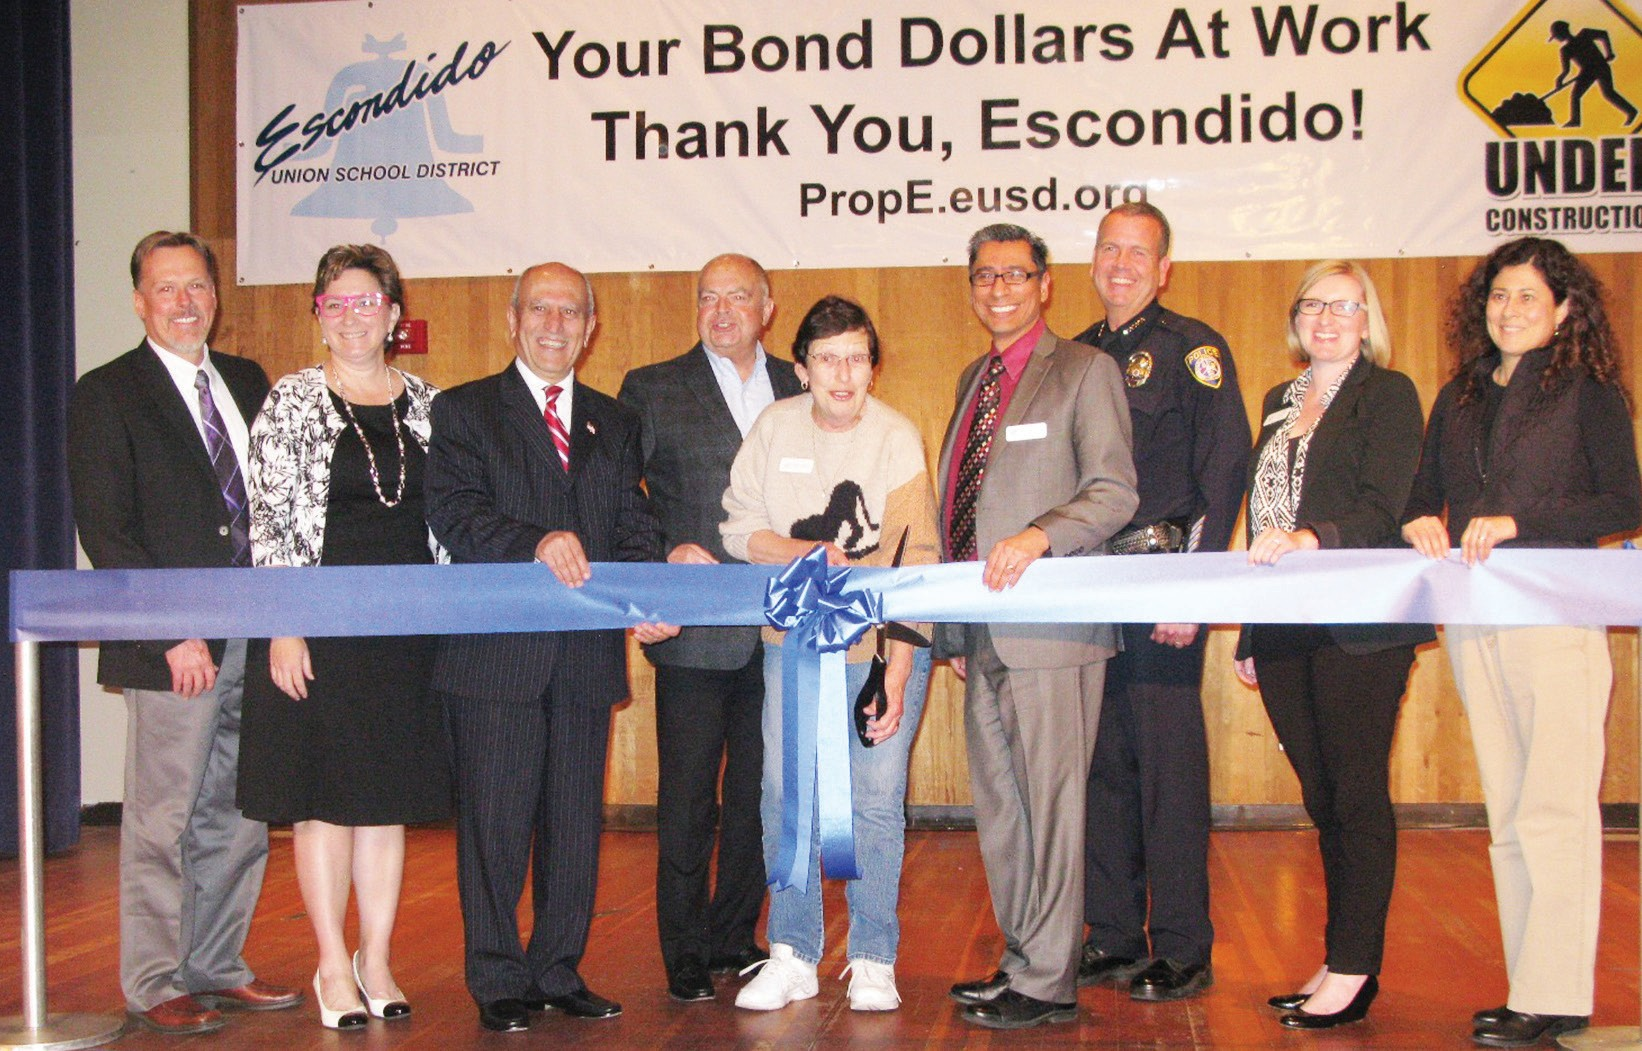 School Board Chairman Joan Gardner cuts the ribbon in celebration of the fencing projects at four Escondido Union School District schools. From left are Dr. Gary Al­tenburg, EUSD Board Clerk; Paullette Donnellon, EUSD Board Member; Mayor Sam Abed; Kirk Effinger, Citizen's Oversight Committee Chairperson; Joan Gardner; Dr. Luis Ibarra, EUSD Superintendent; Craig Carter, Chief of Police, Zesty Harper, Board Vice-President; Olga Diaz, Escondido Councilwoman. LEFT: Michael Taylor, assistant superintendent and emcee of the event. Photo by Doug Green